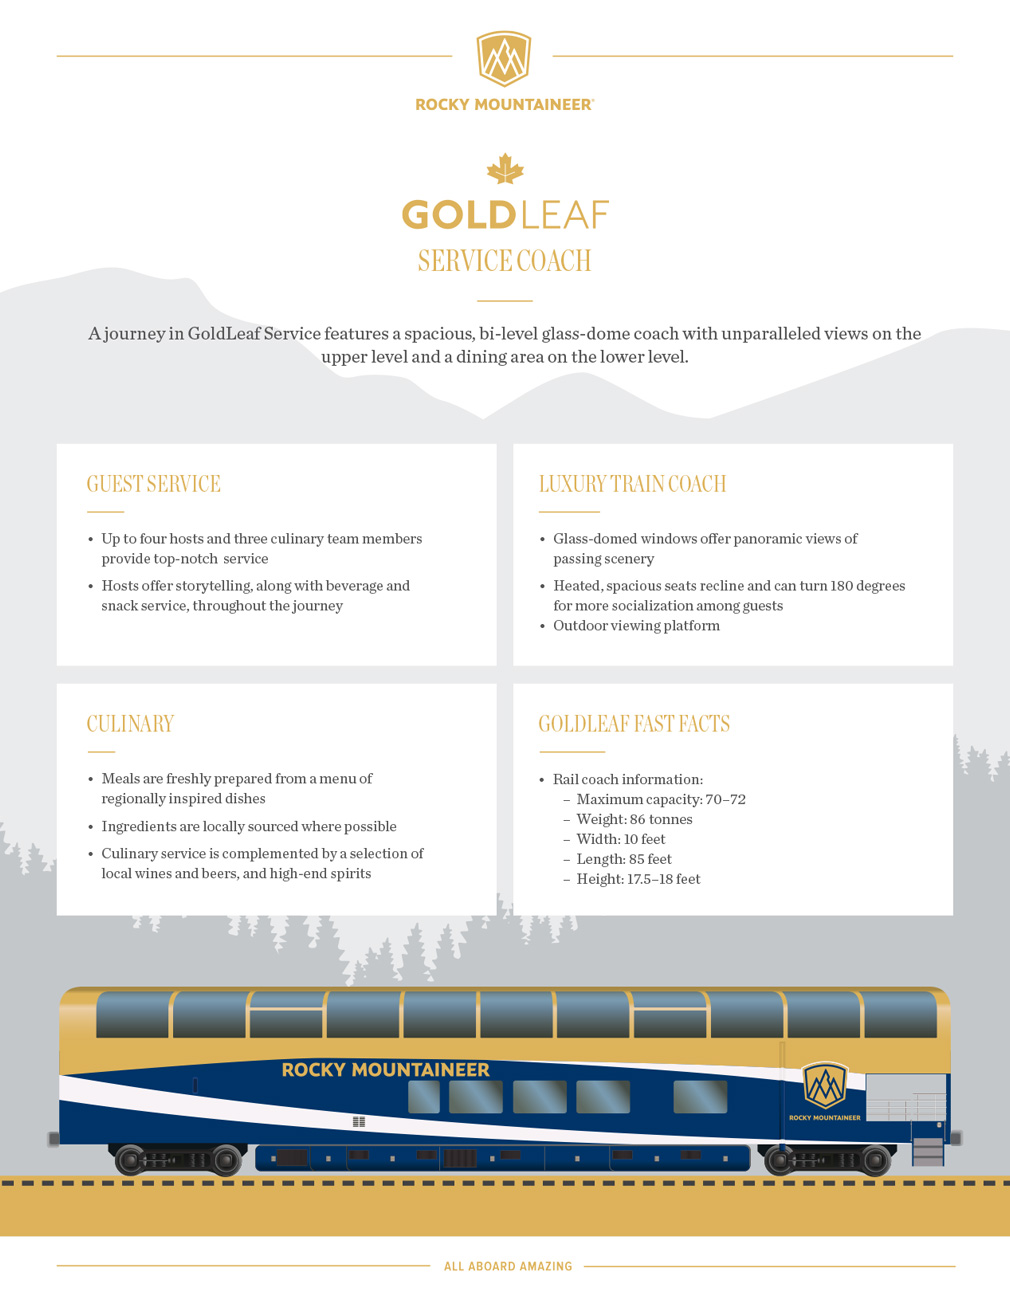 Rocky Mountaineer Gold Leaf Service